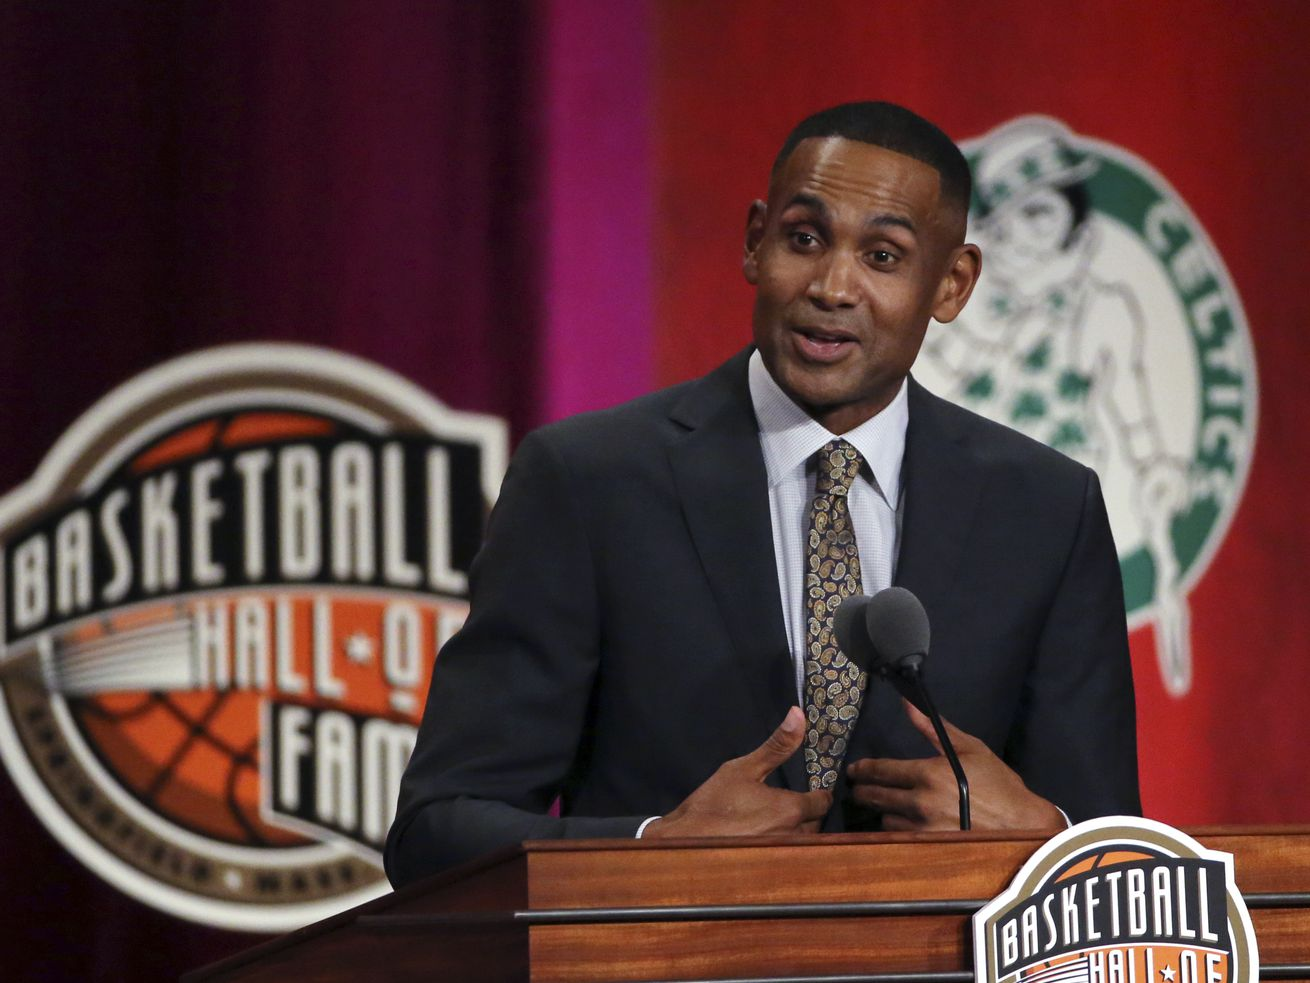 When the Tokyo Olympics end, Grant Hill will replace Jerry Colangelo and become managing director of USA Basketball's men's national team.